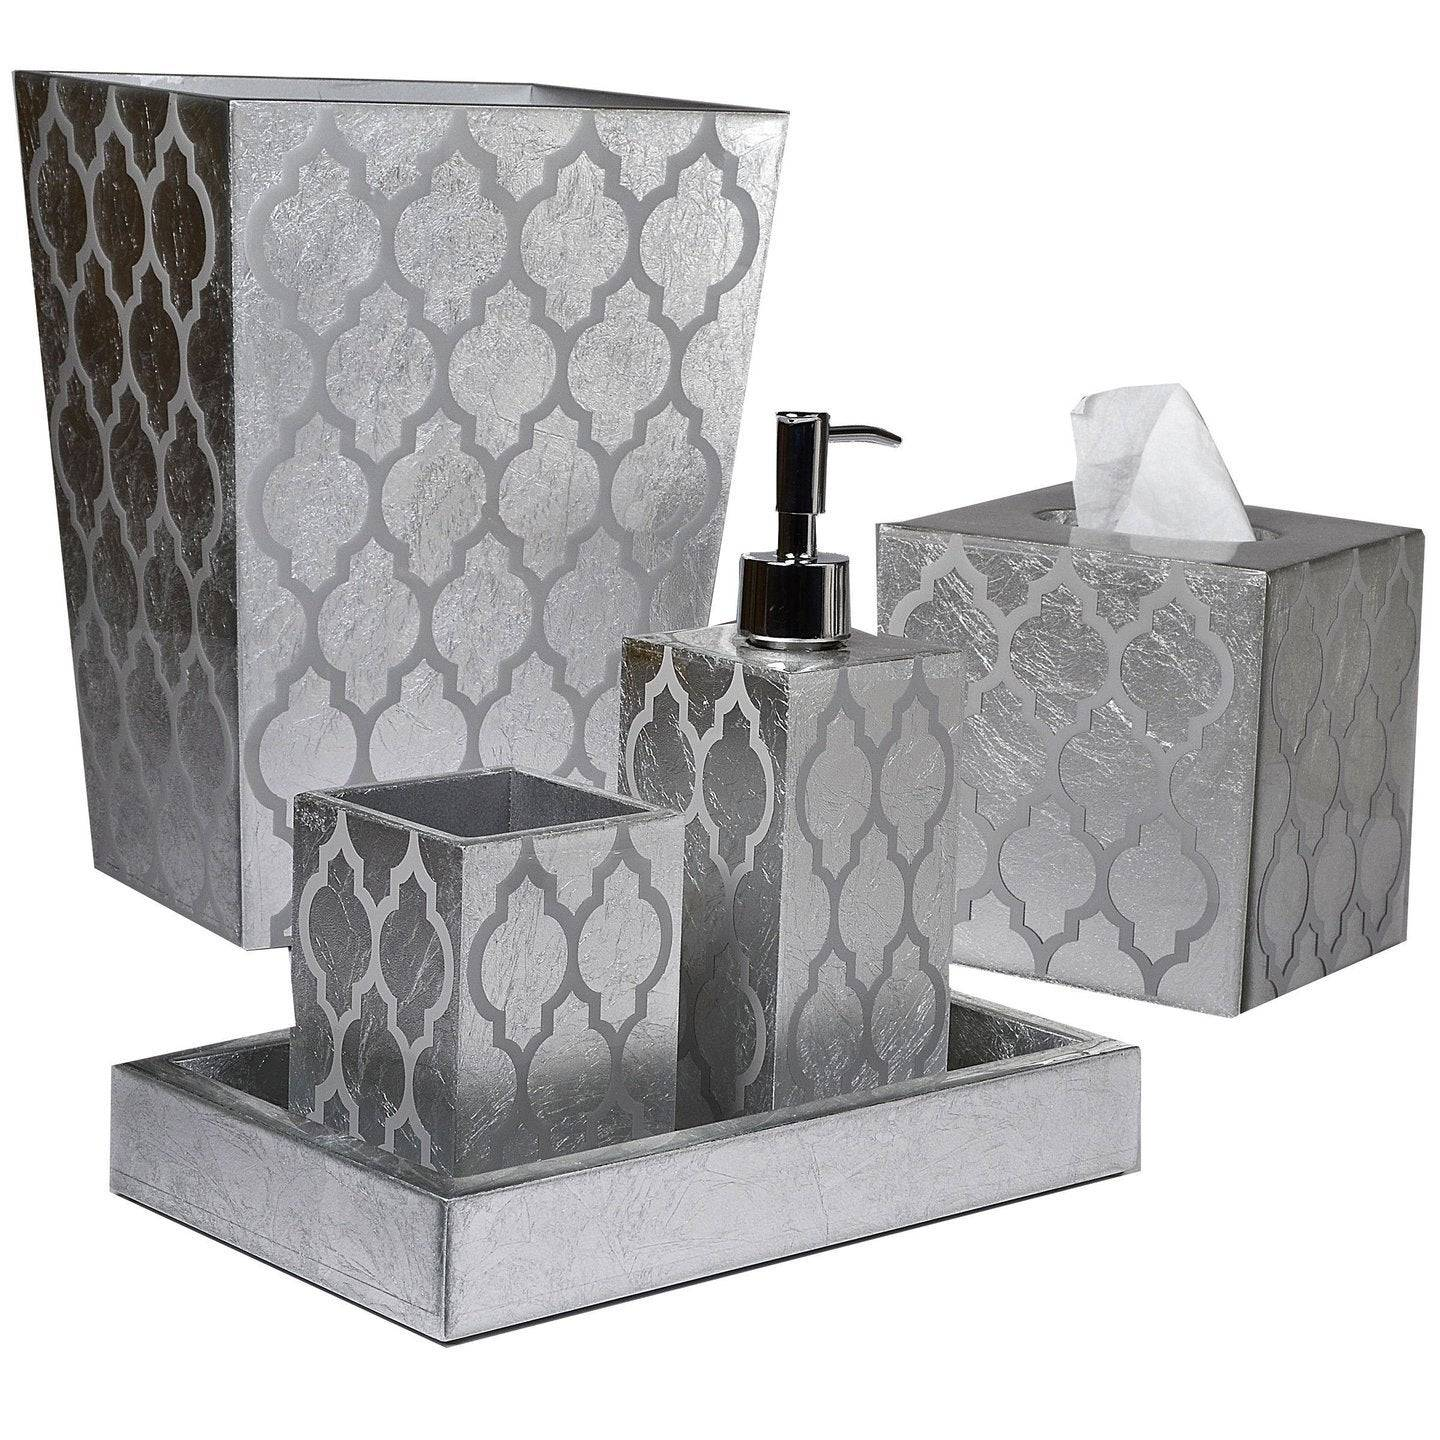 Mike + Ally Arabesque Silver Bath Accessories by Mike + Ally